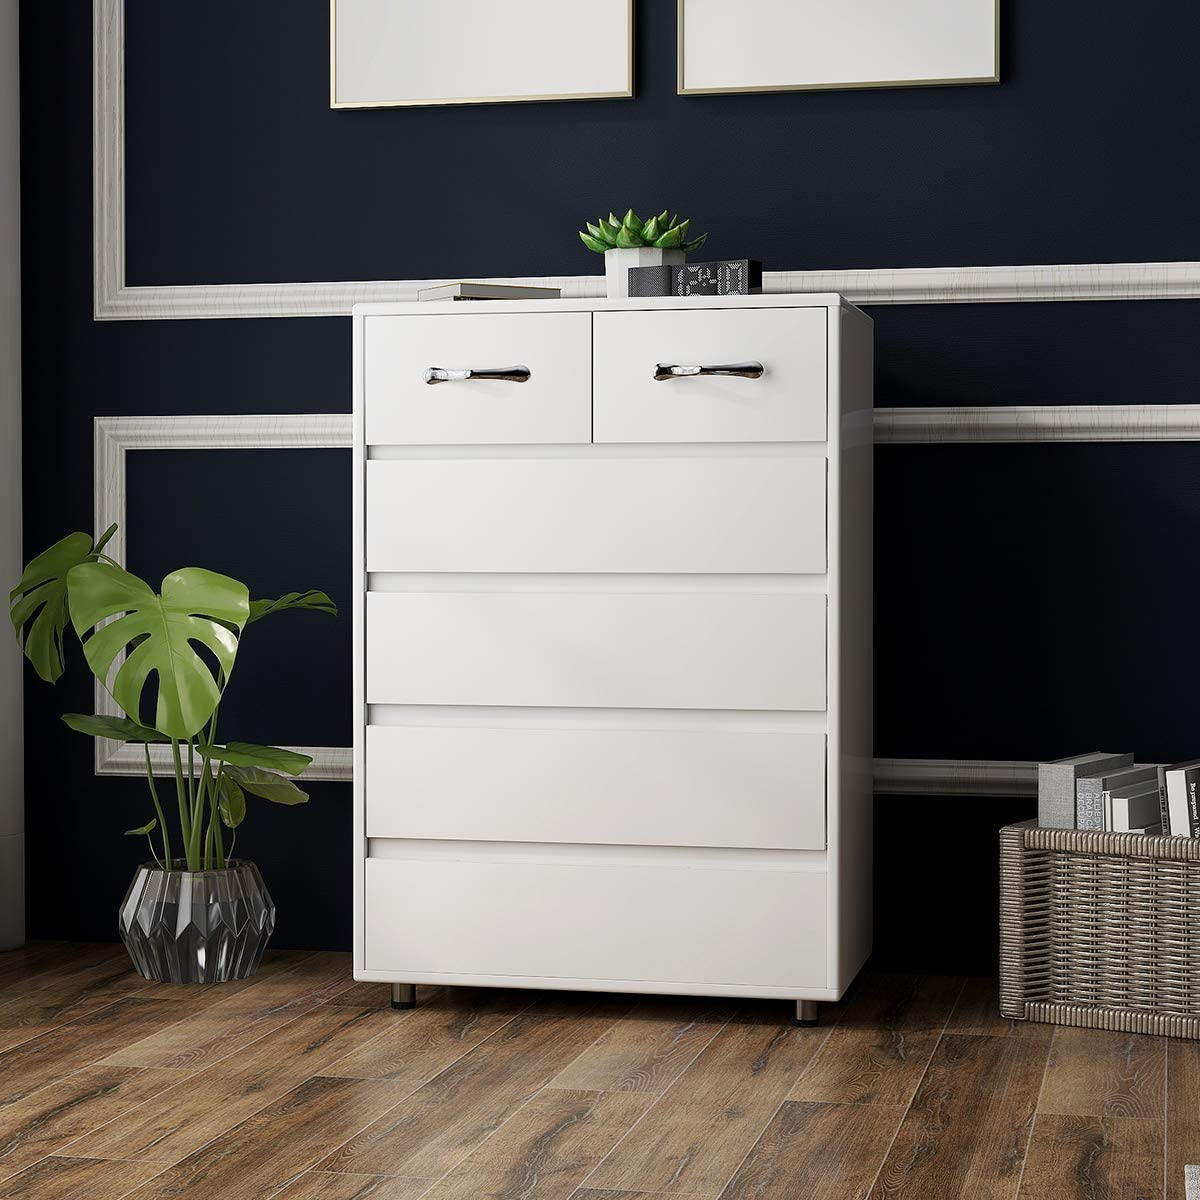 6 Drawers Dressers lowest price RASOO Chest of Tall Bedroom Cabinet High order St Drawer